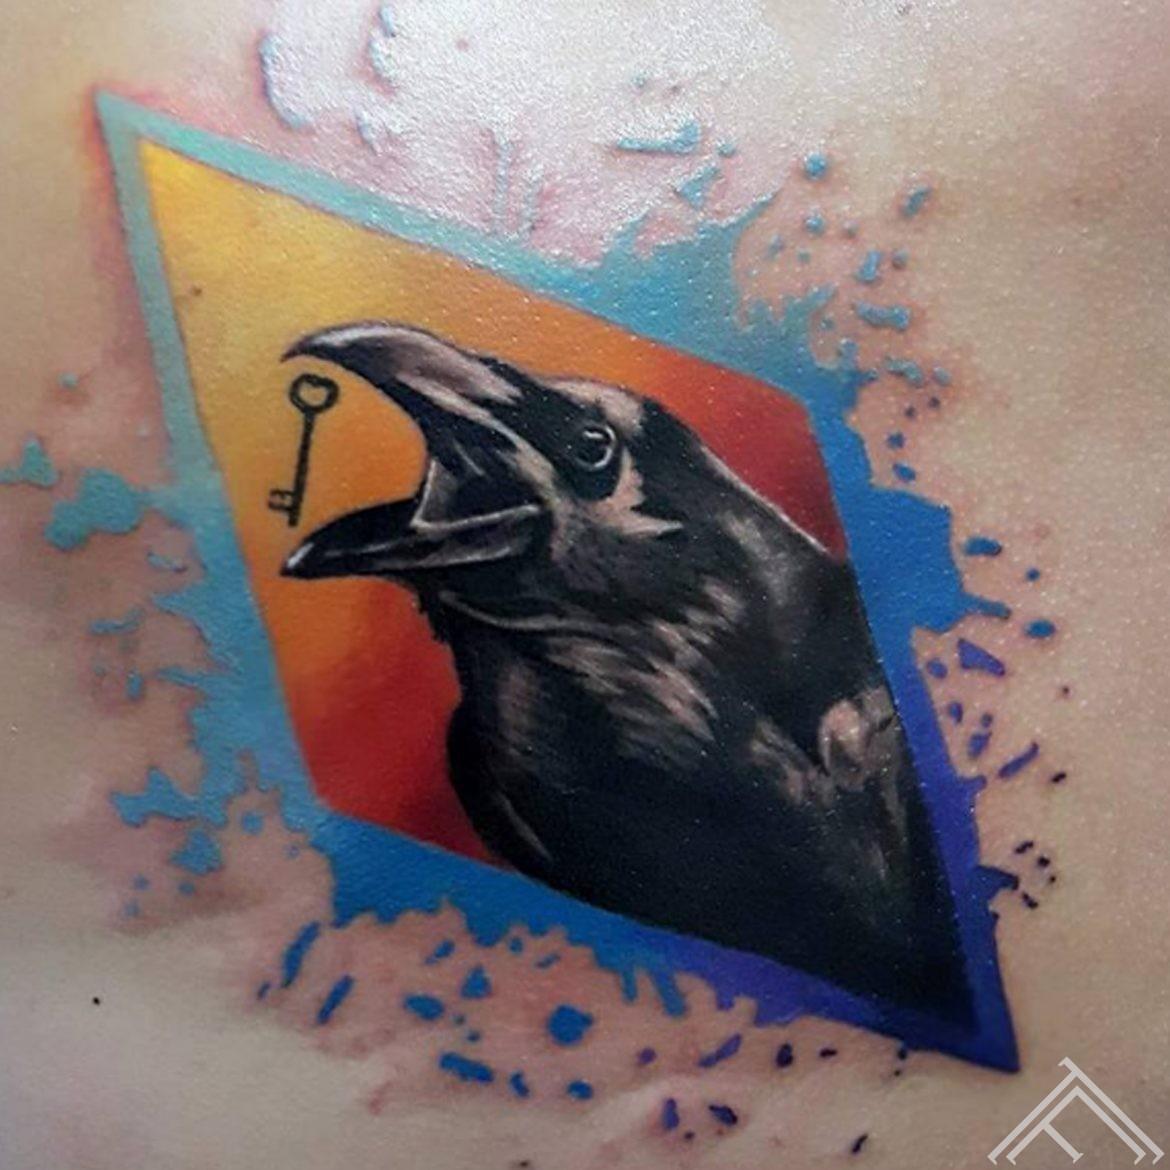 bird-abstract-sketch-watercolor-tattoo-tetovejums-krasains-skice-udenskrasa-riga-tattoofrequency-johnlogan